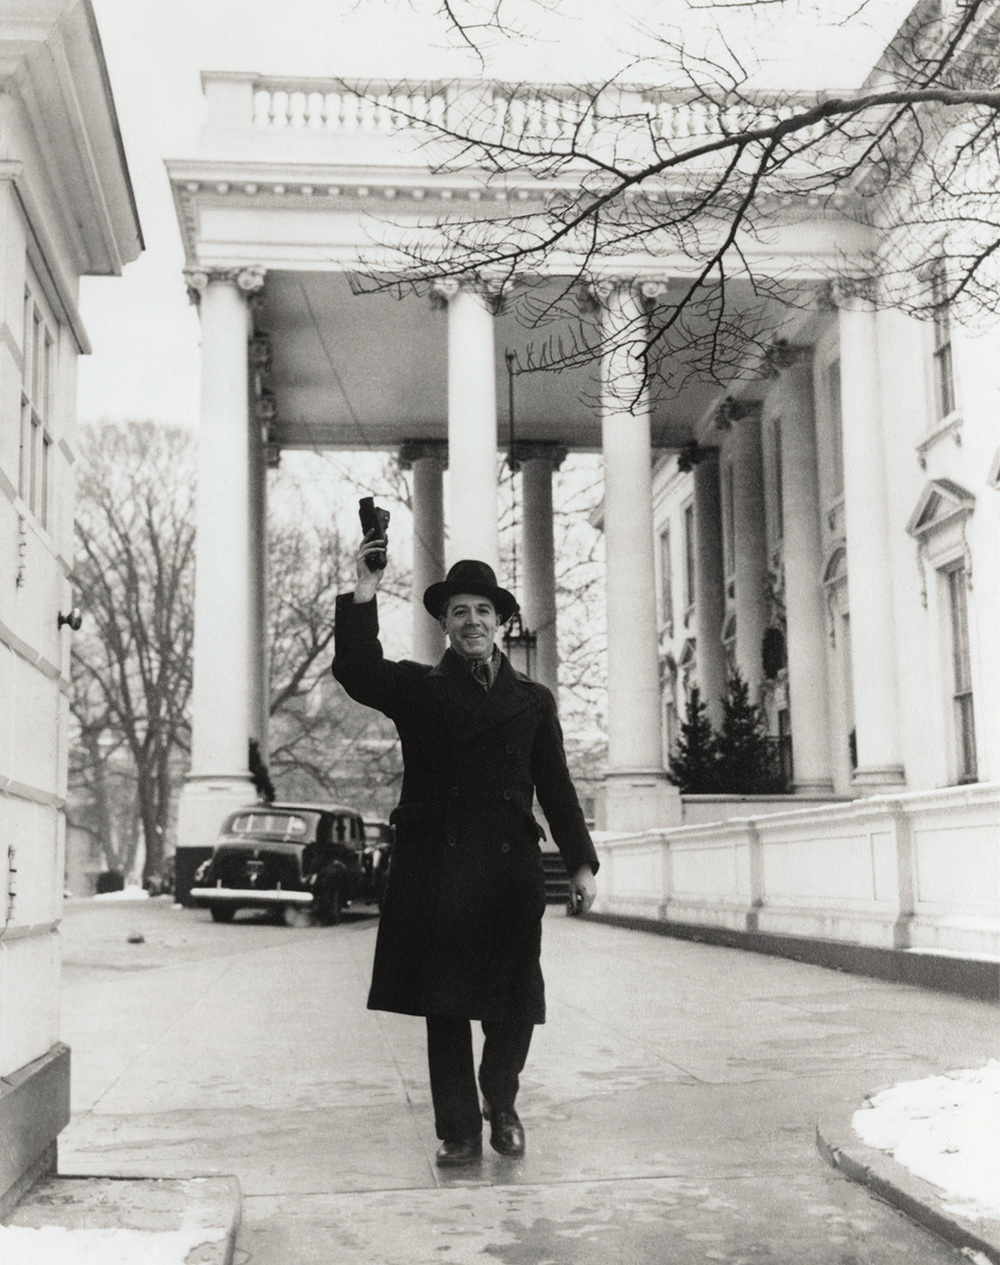 Marcel Sternberger leaving the White House, Washington, D.C., 1939